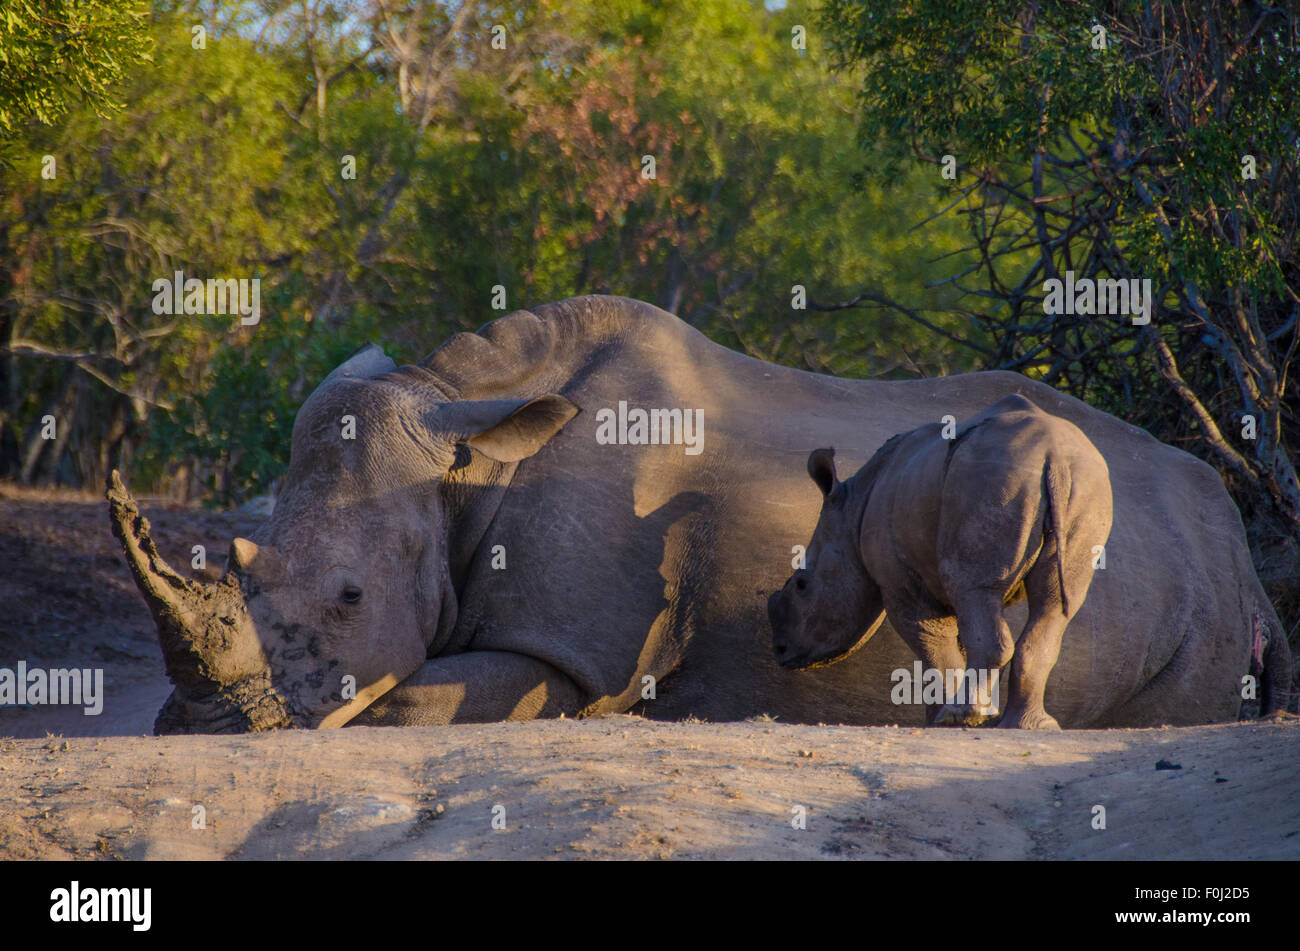 As the sun begins to set over Mkhaya Game Reserve, a white rhinoceros rests in the forest as its baby looks on. Stock Photo